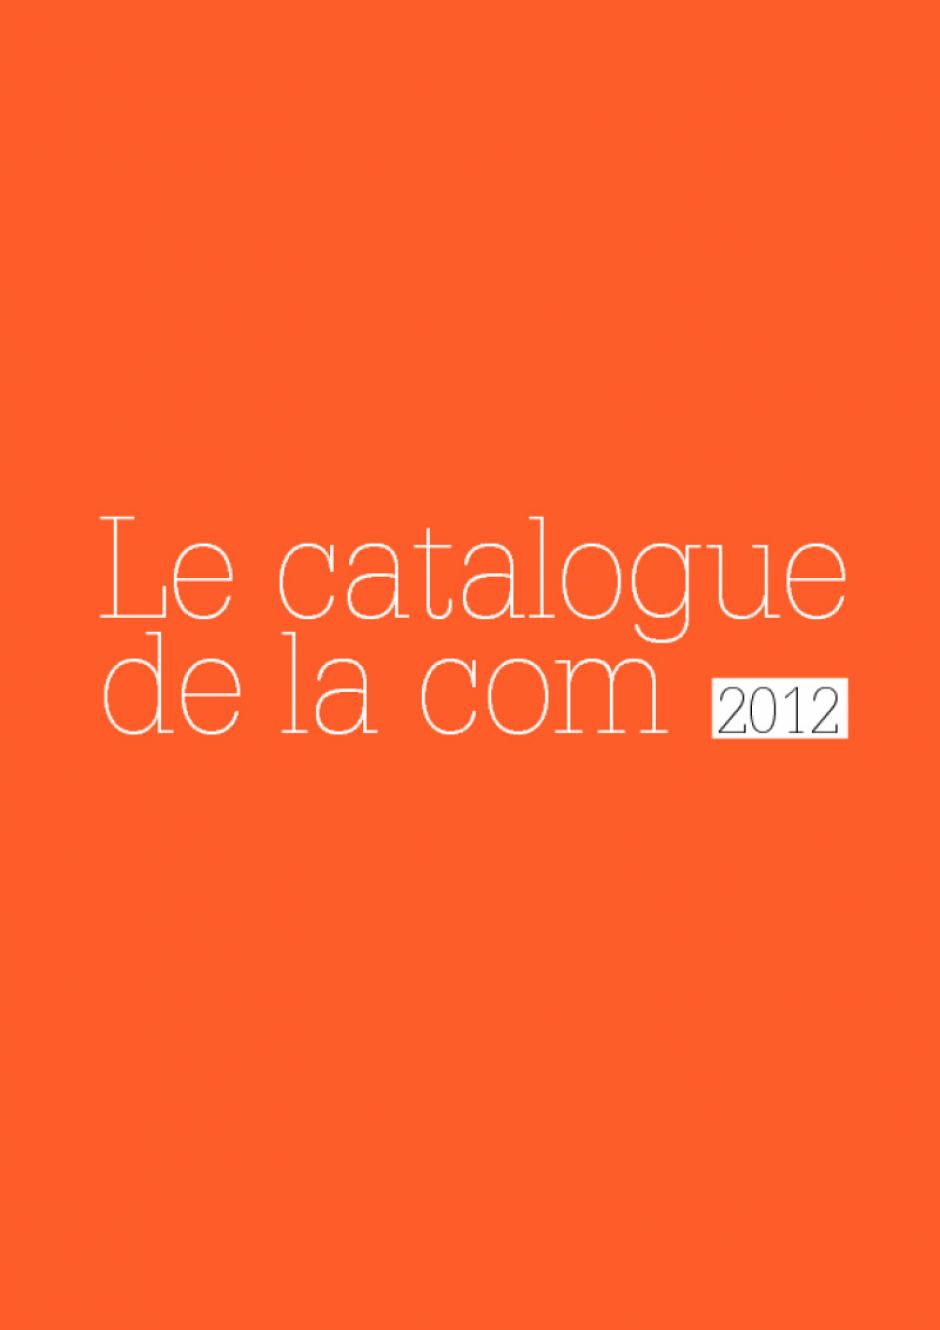 Le catalogue de la communication